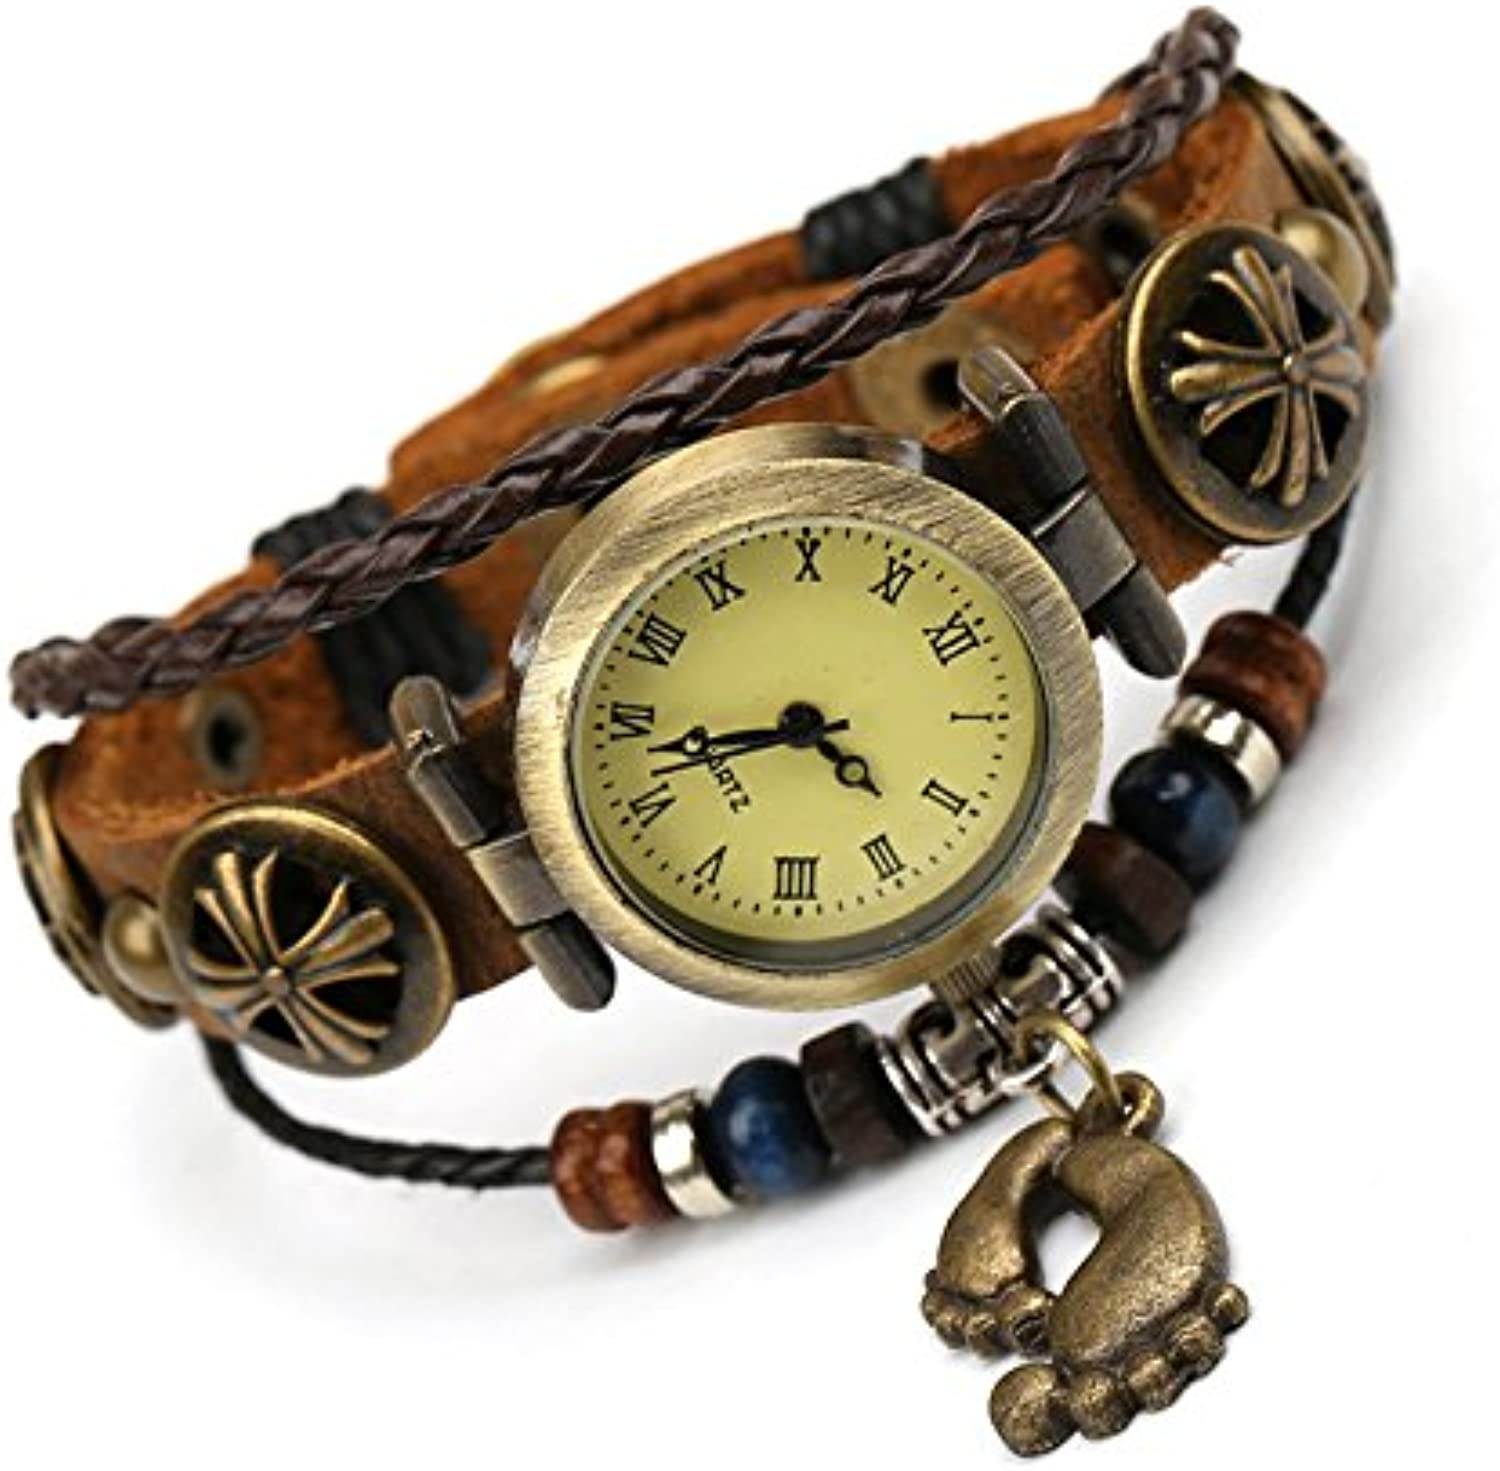 XM New man ladies decorative vintage beaded leather bracelet leather bracelet watch watches